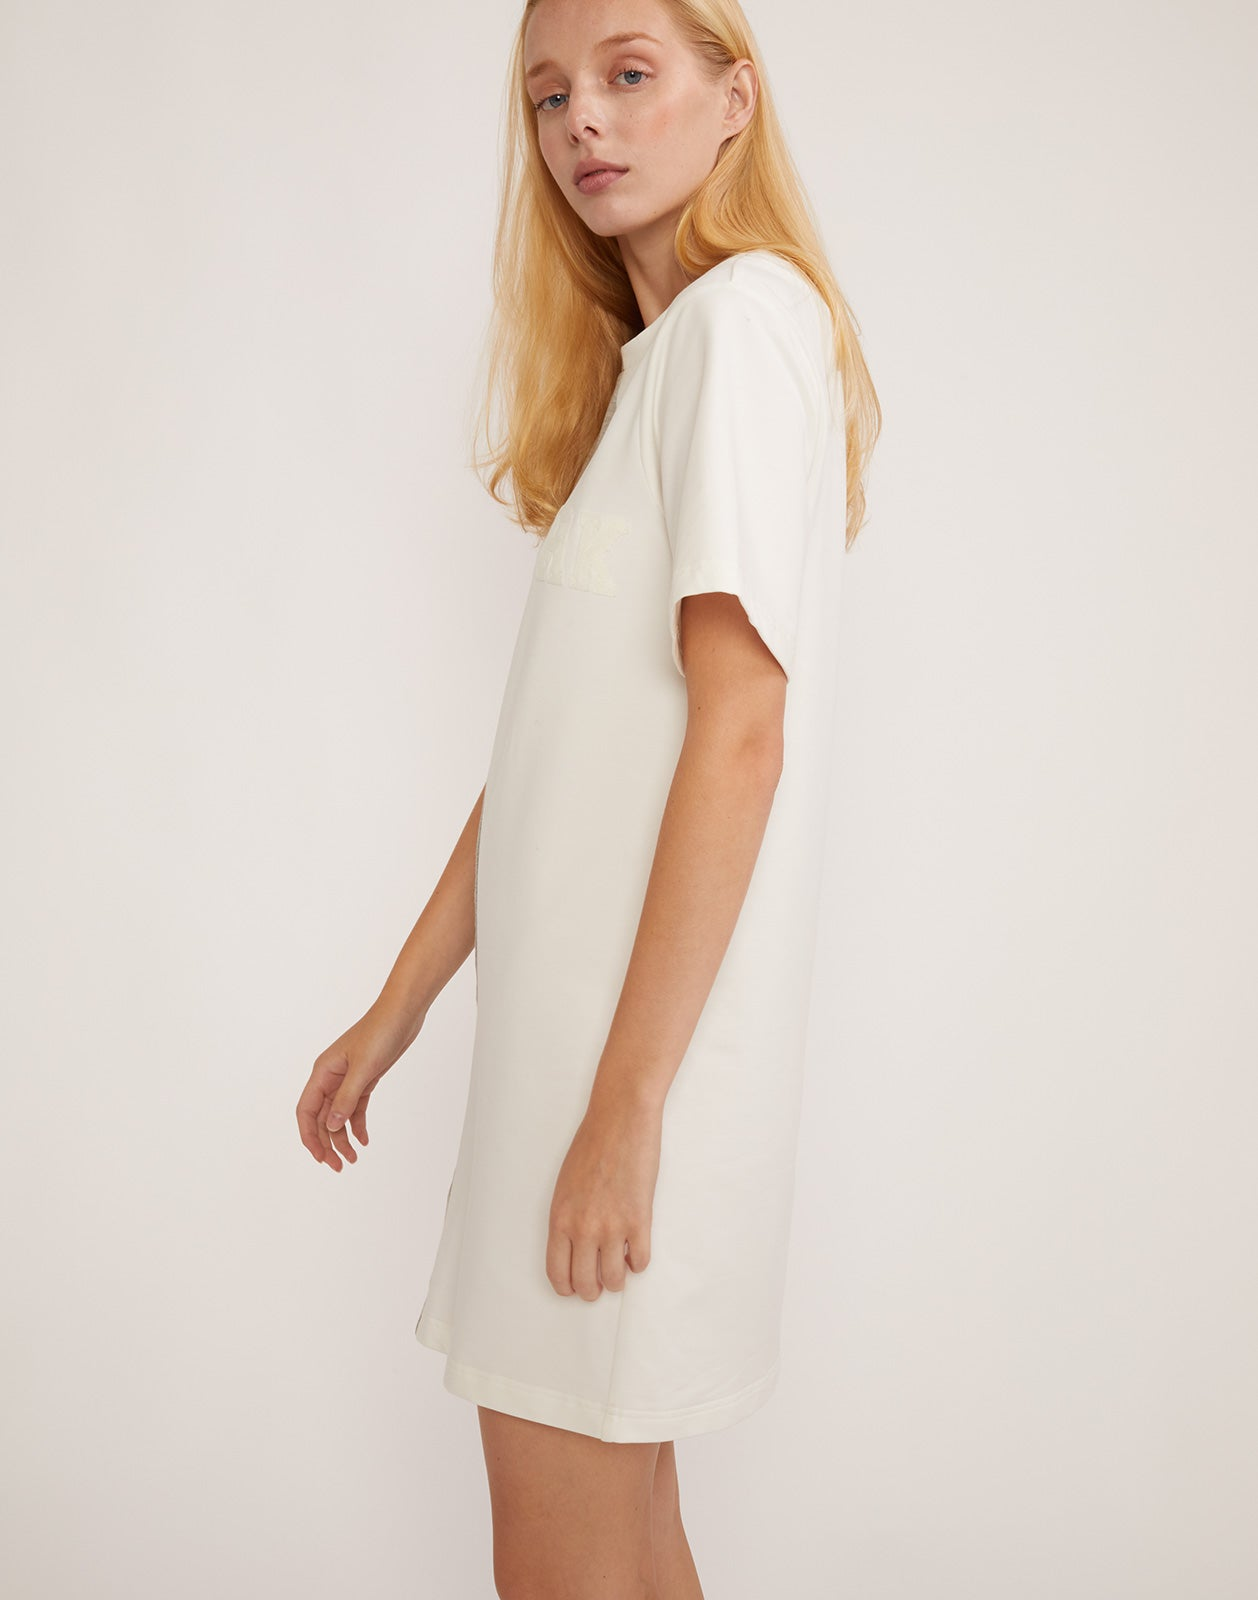 Side view of CaliYork t-shirt dress.